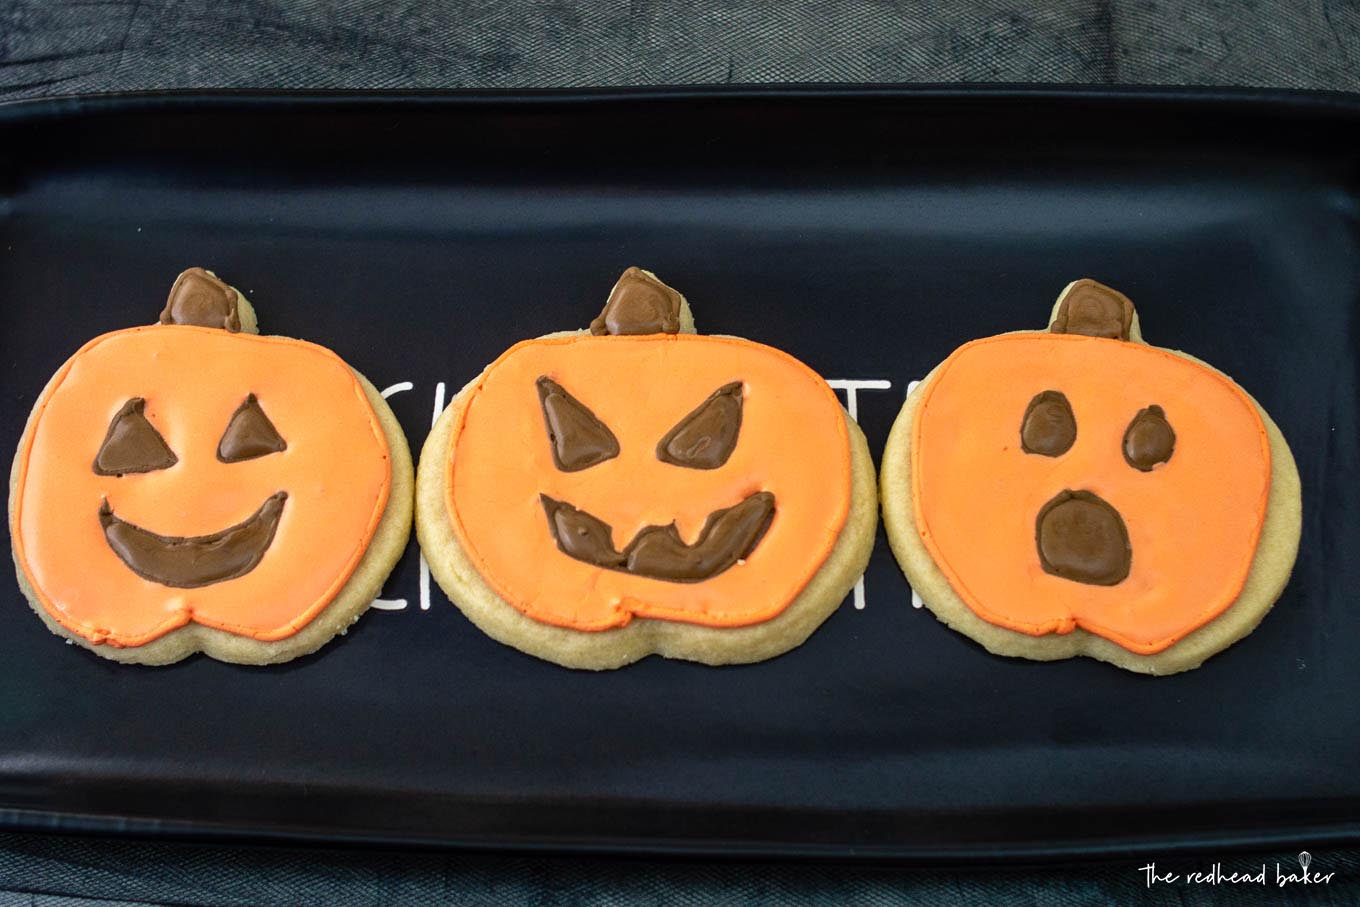 Three jack-o-lantern cookies on a black tray